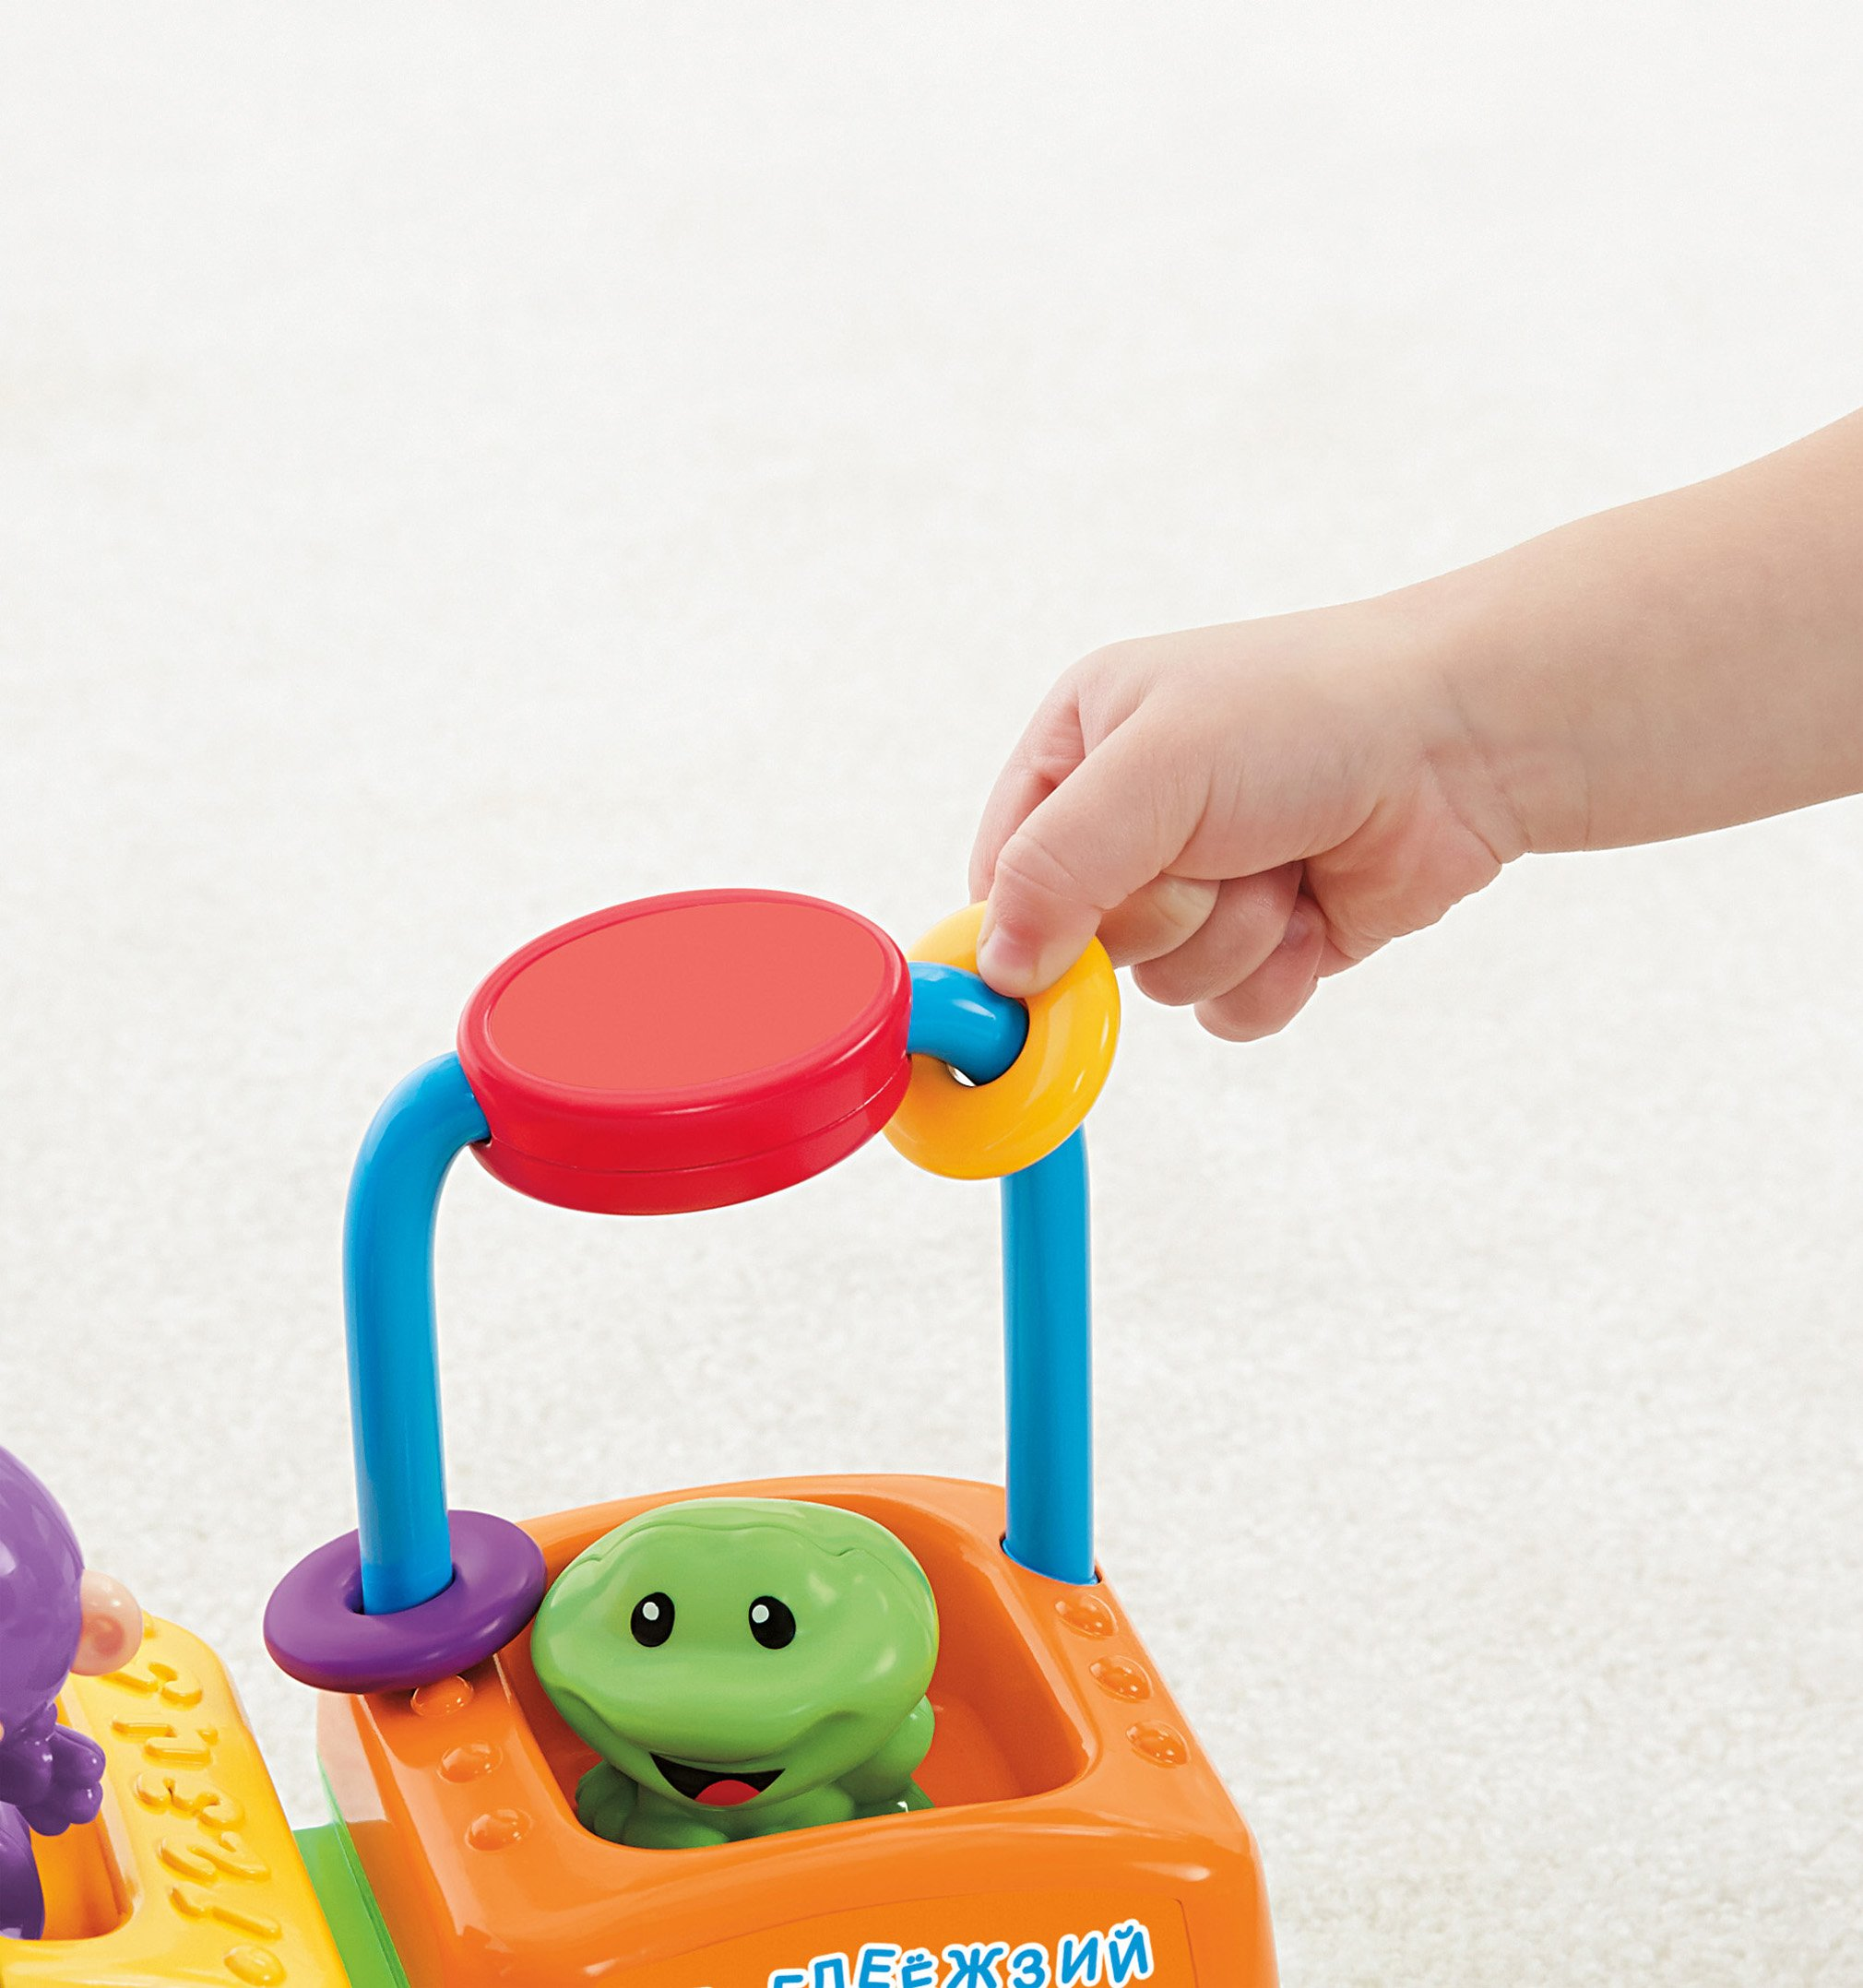 Fisher-Price Laugh & Learn Smart Stages Puppy's Smart Train by Fisher-Price (Image #12)